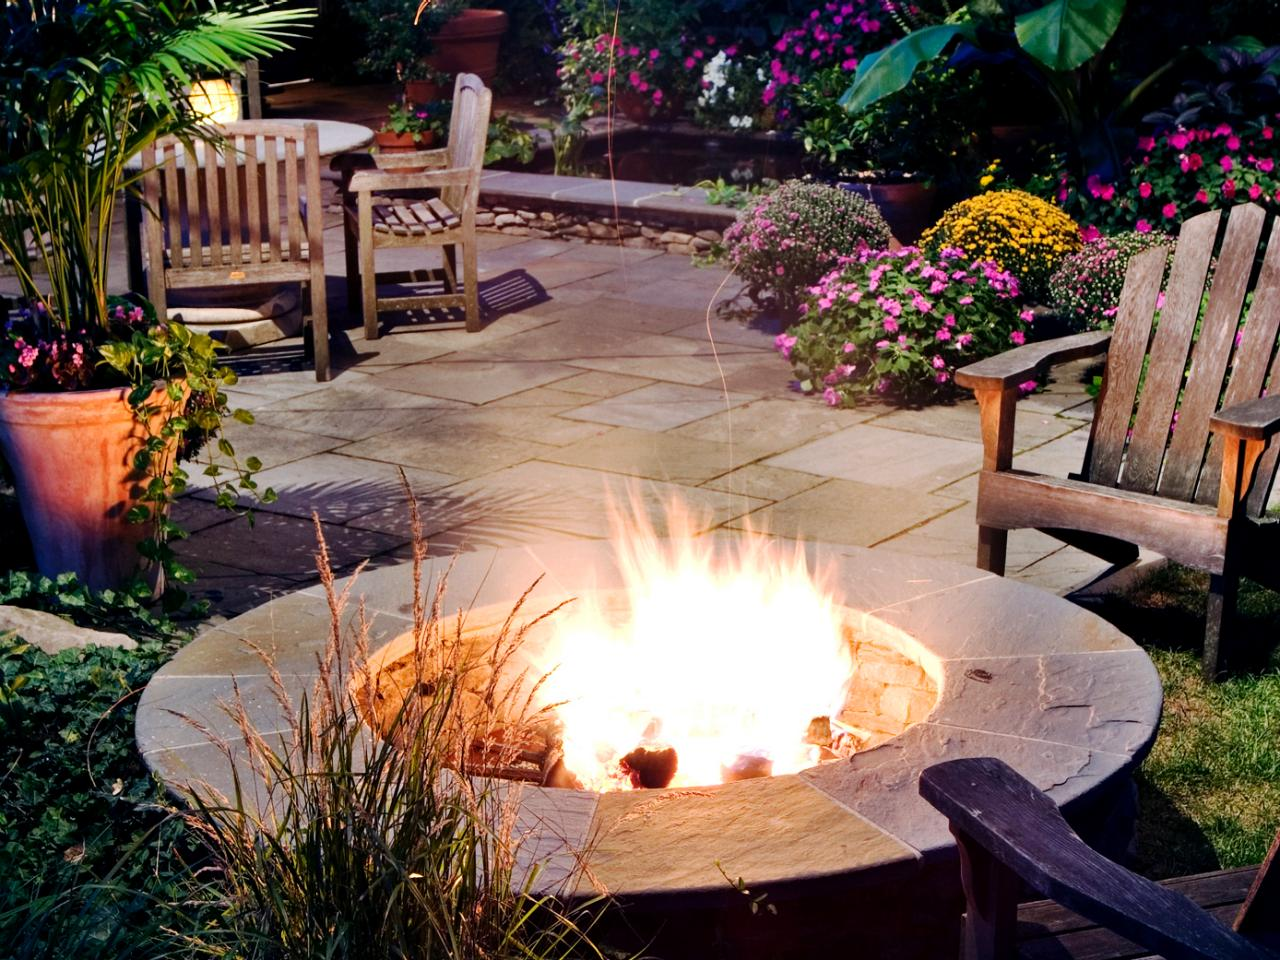 21 Amazing Outdoor Fire Pit Design Ideas on Simple Outdoor Fireplace Ideas id=70903